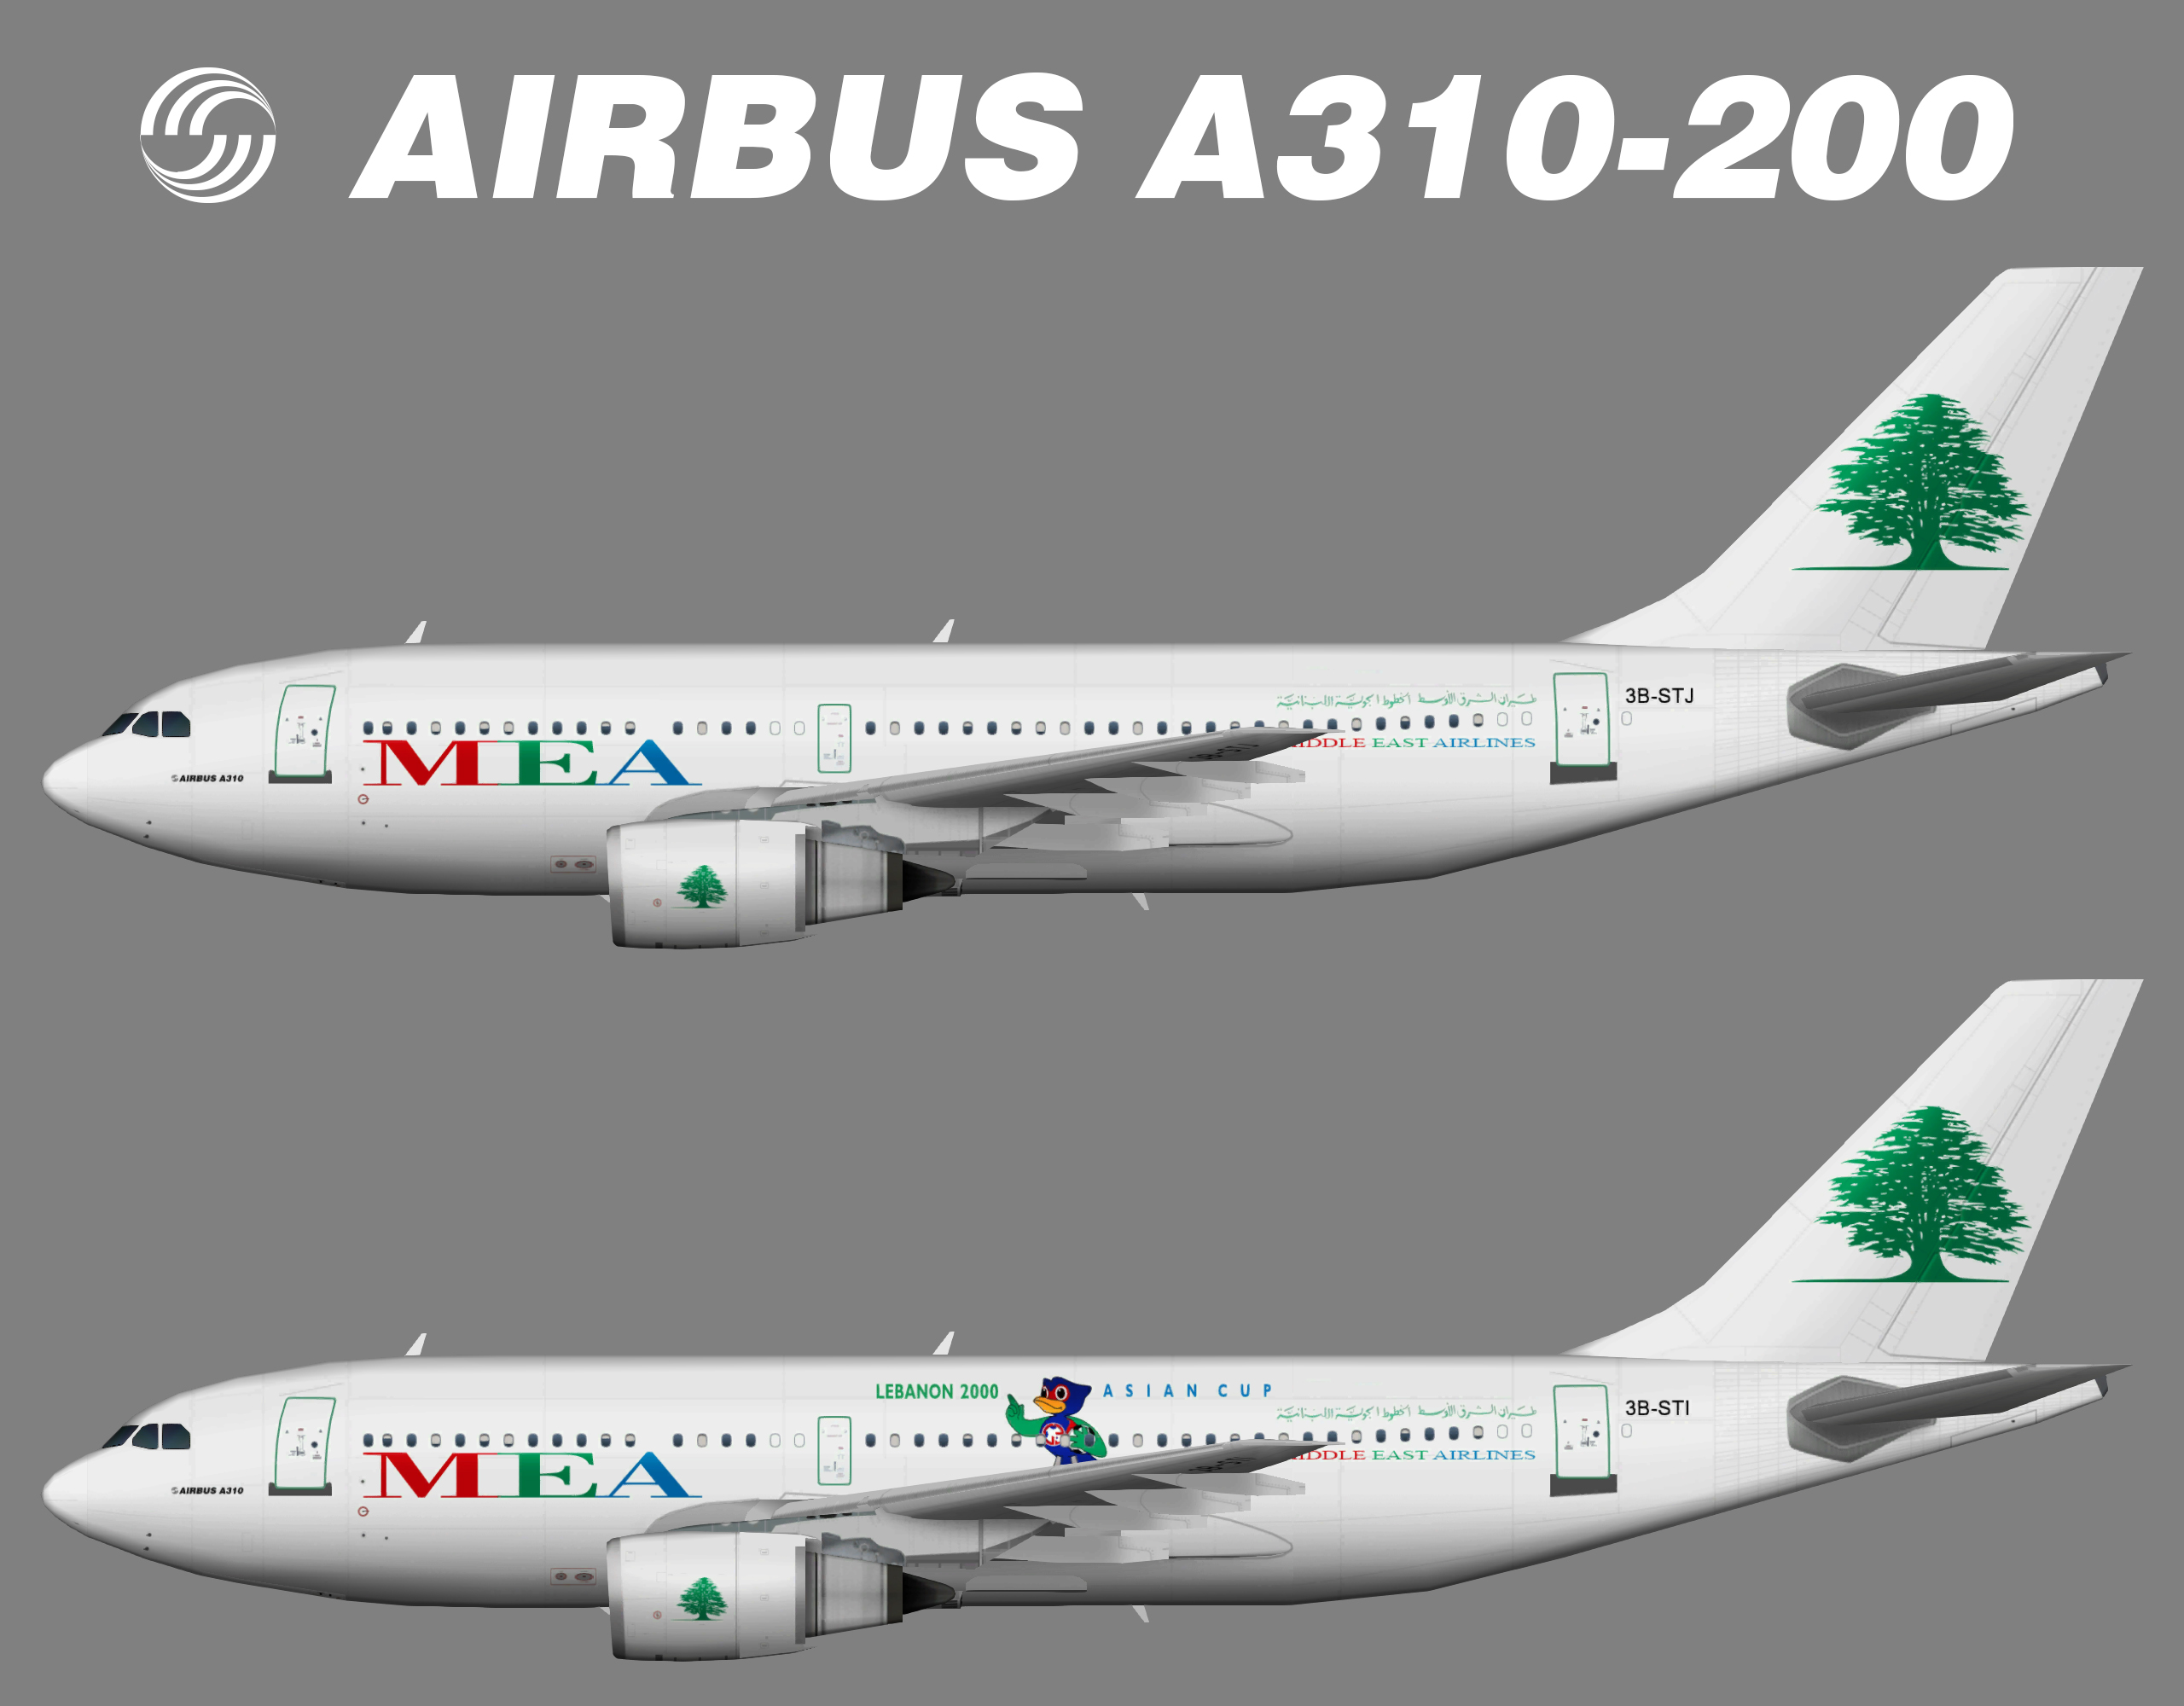 Middle East Airlines MEA Airbus A310-200